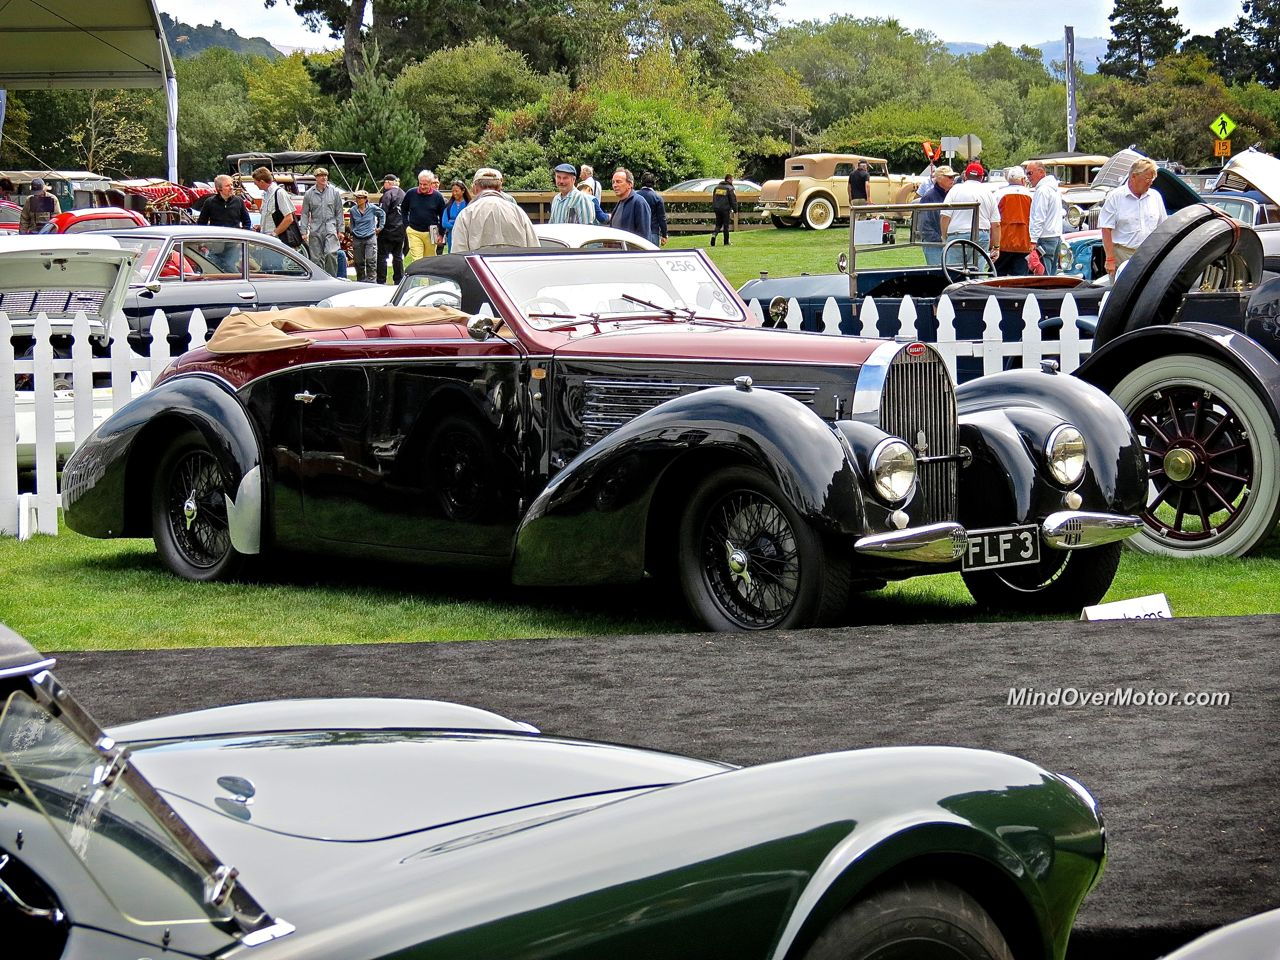 1938 Bugatti Type 57 Stelvio at Bonhams Auction